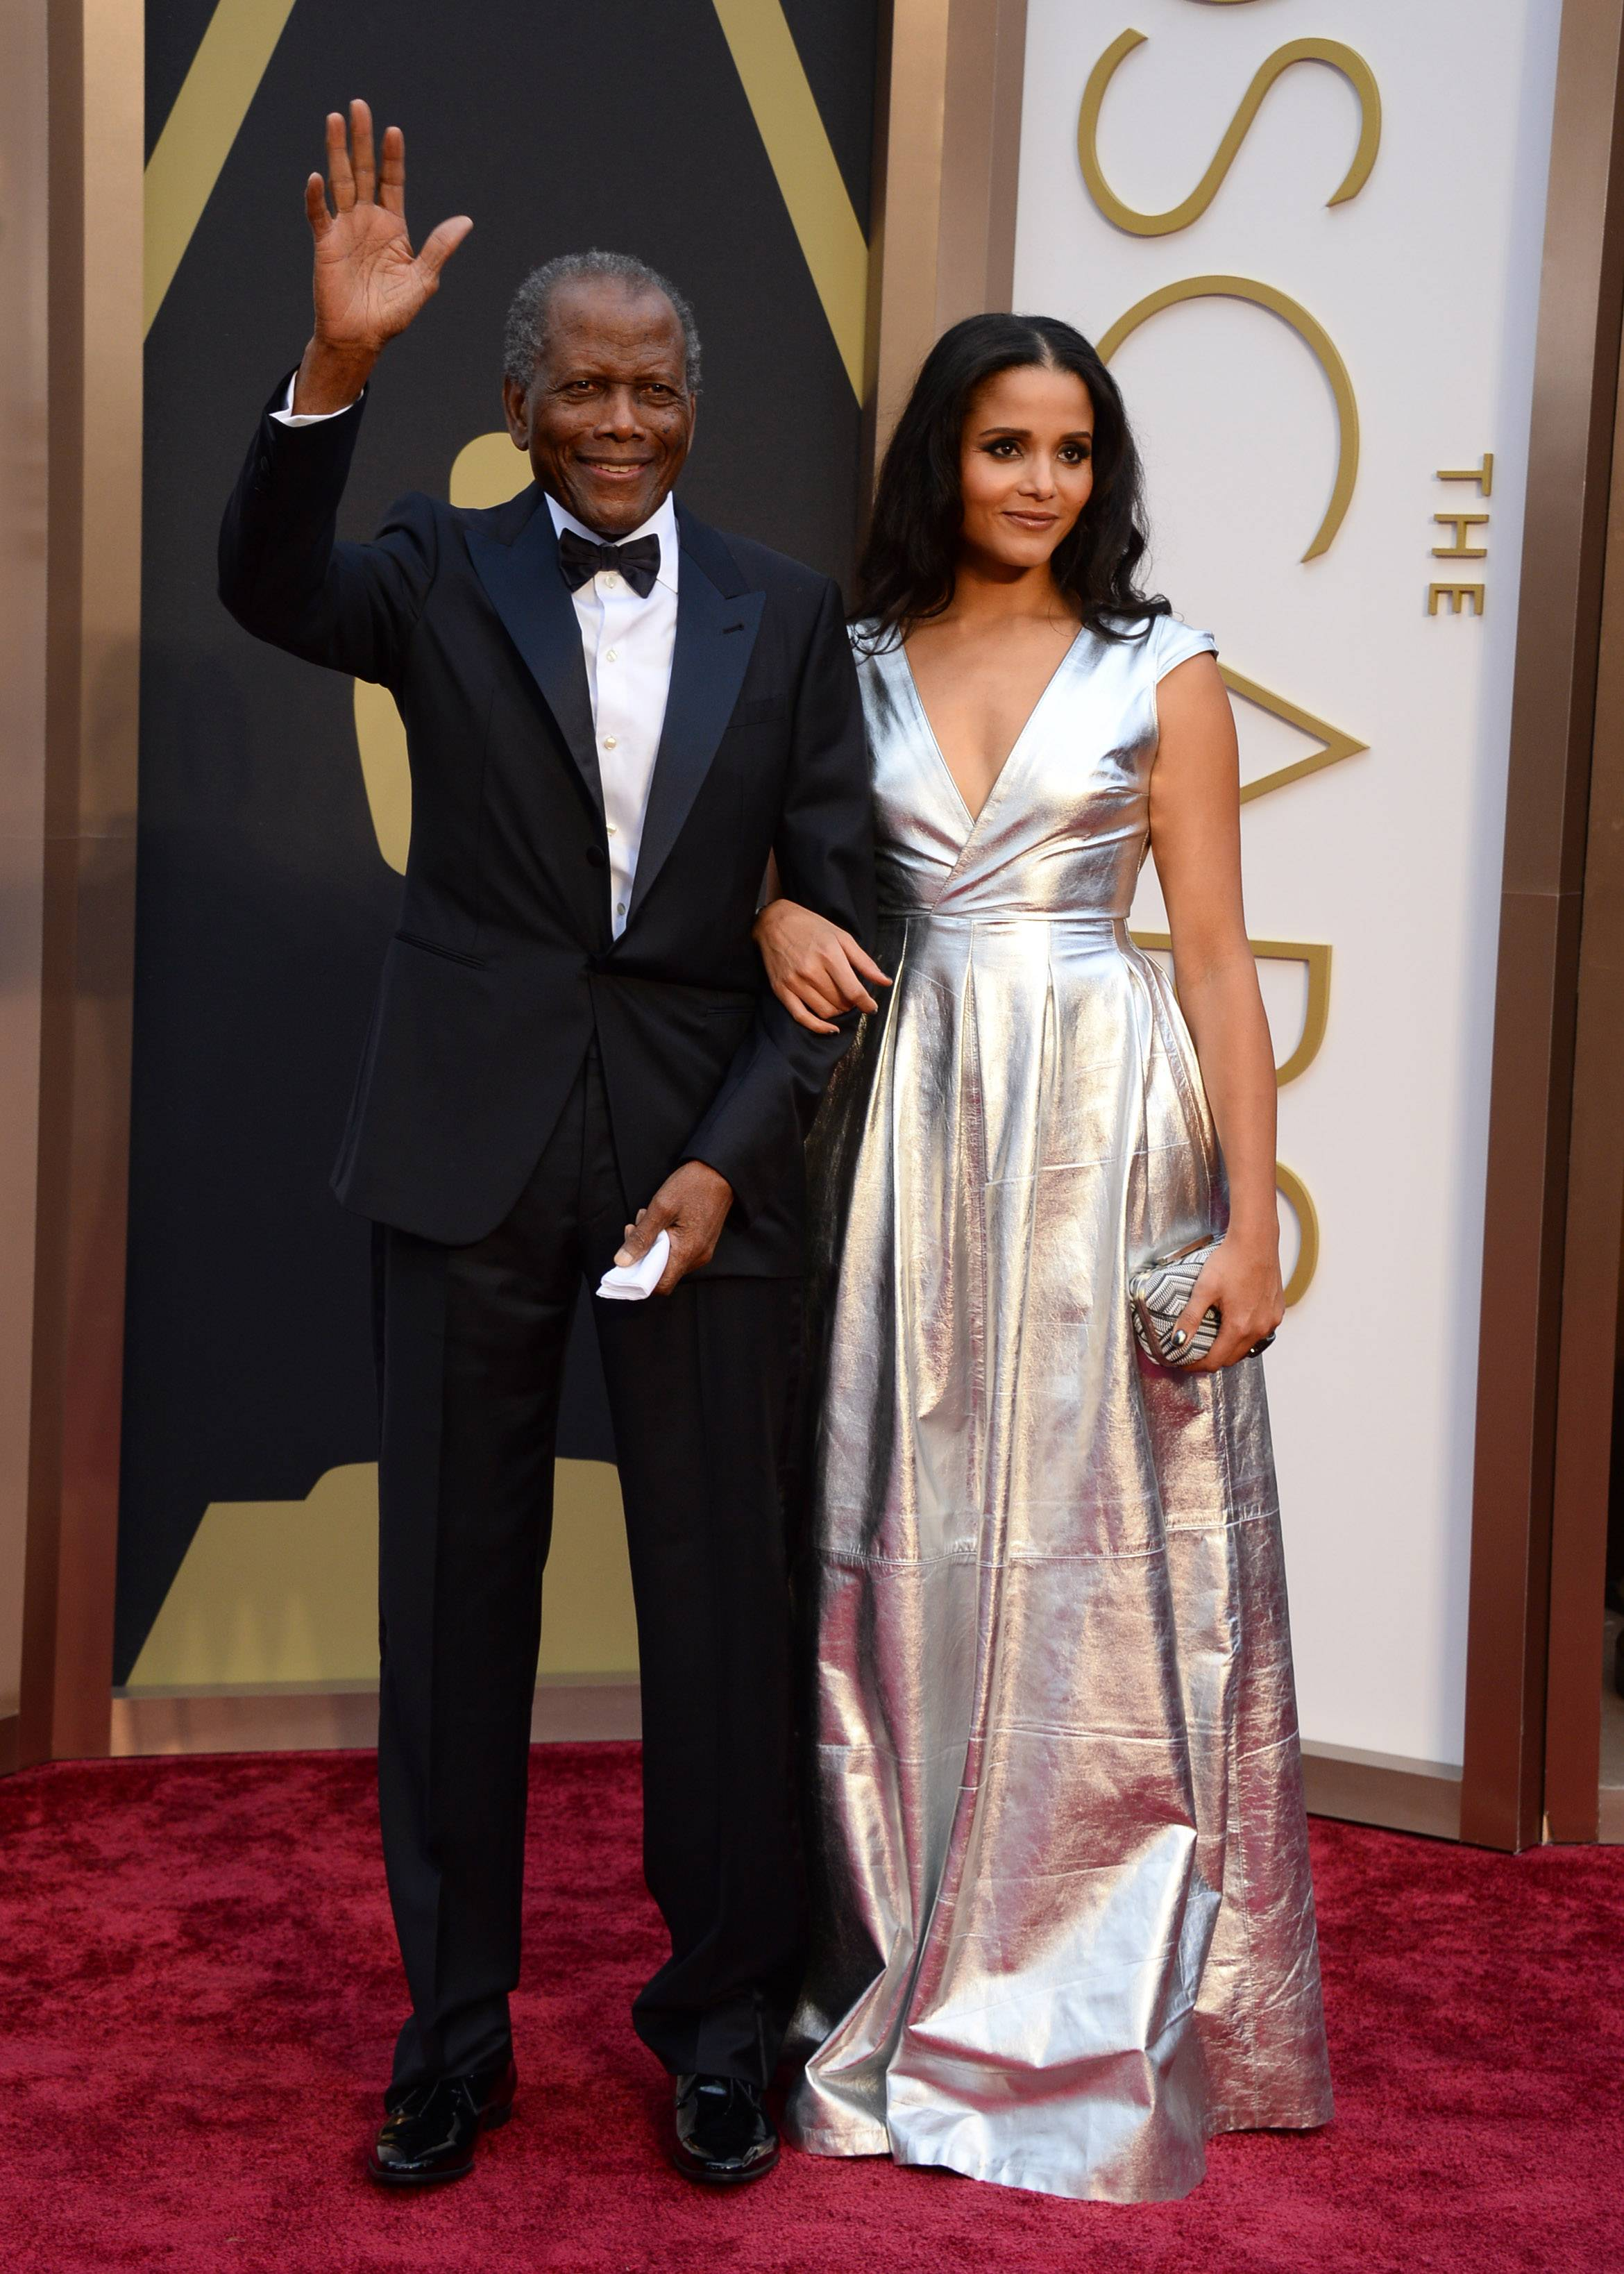 Sidney Poitier, left, and his daughter Sydney Tamiia Poitier walk the red carpet together Sunday at the Oscars.